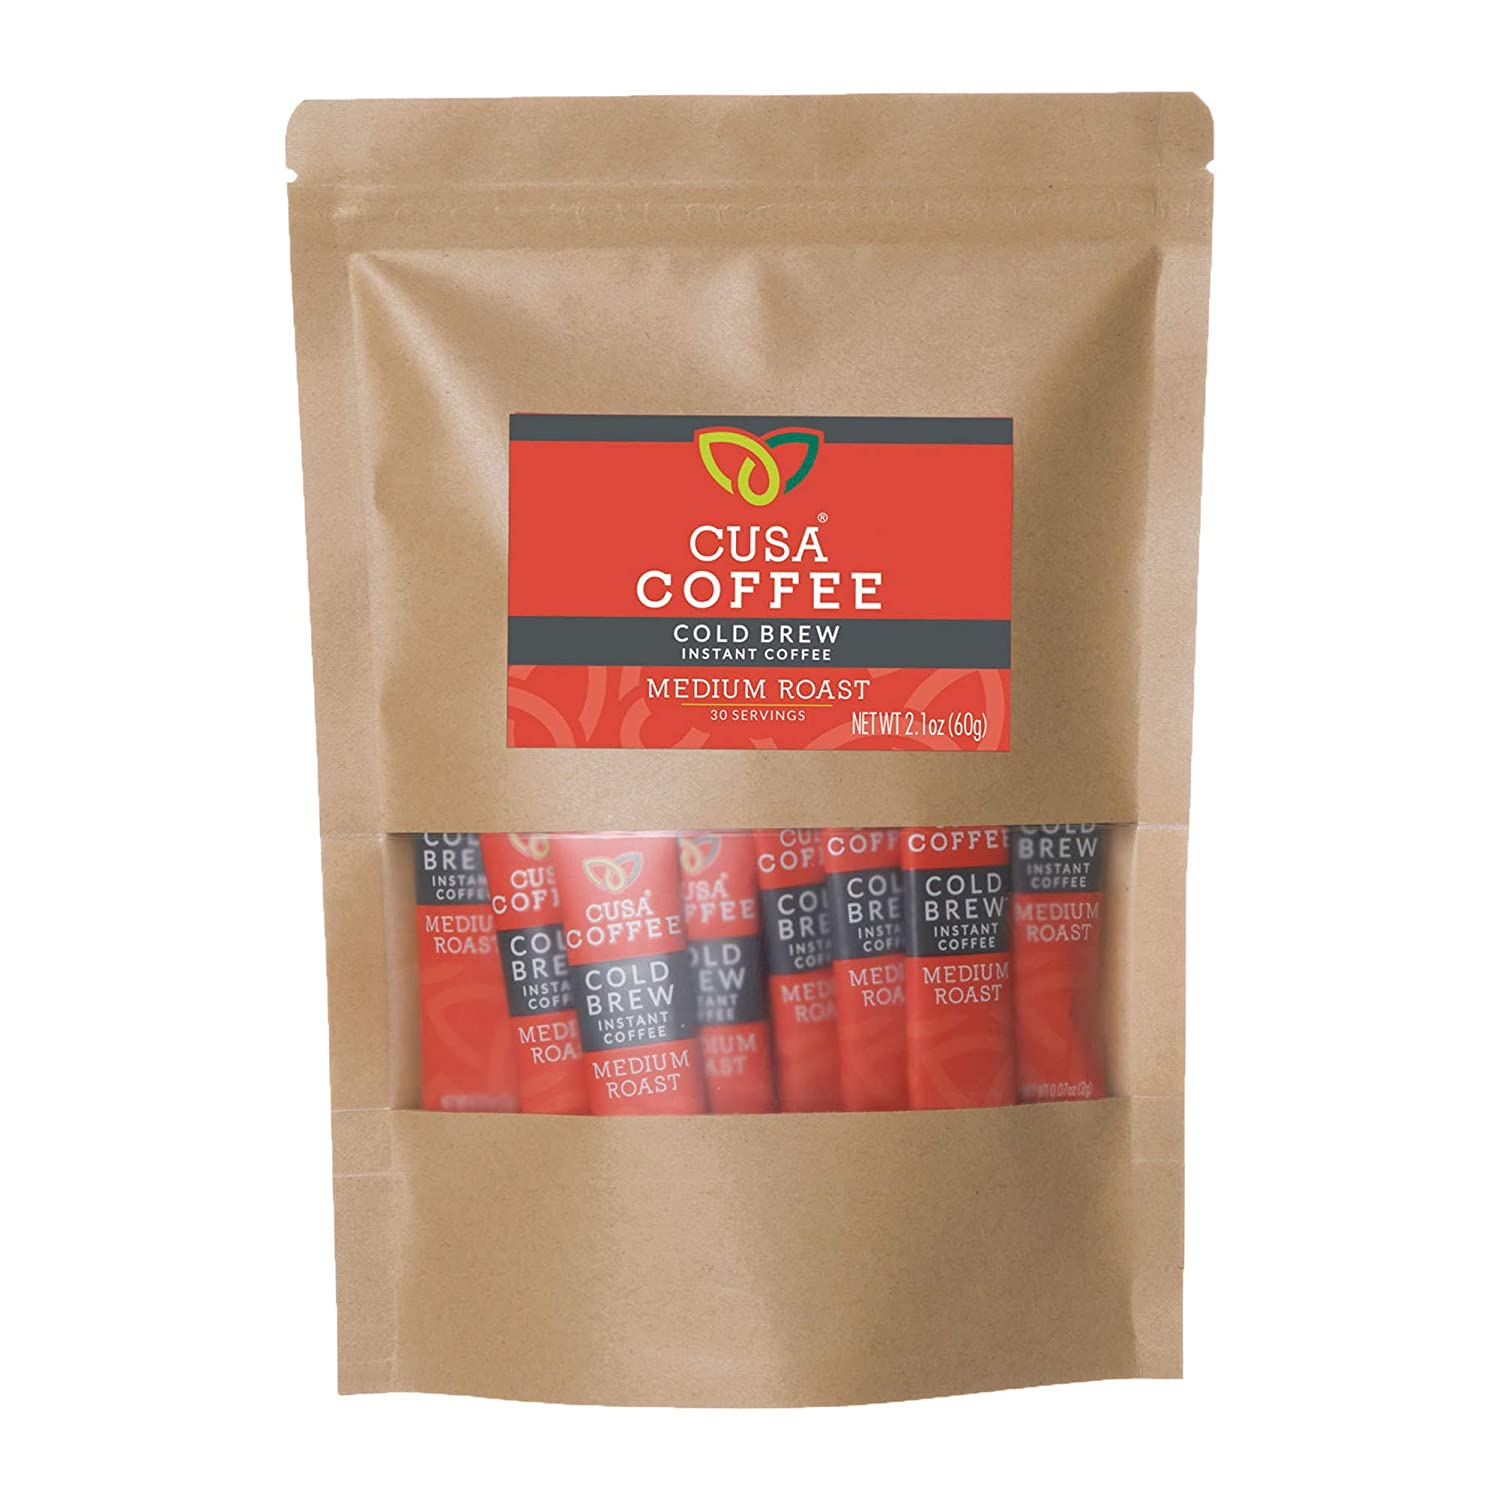 Cusa Coffee: Medium Roast Cold Brew Instant Coffee - No Sugar or Preservatives - Ready in Seconds - Hot or Iced (30 Servings)